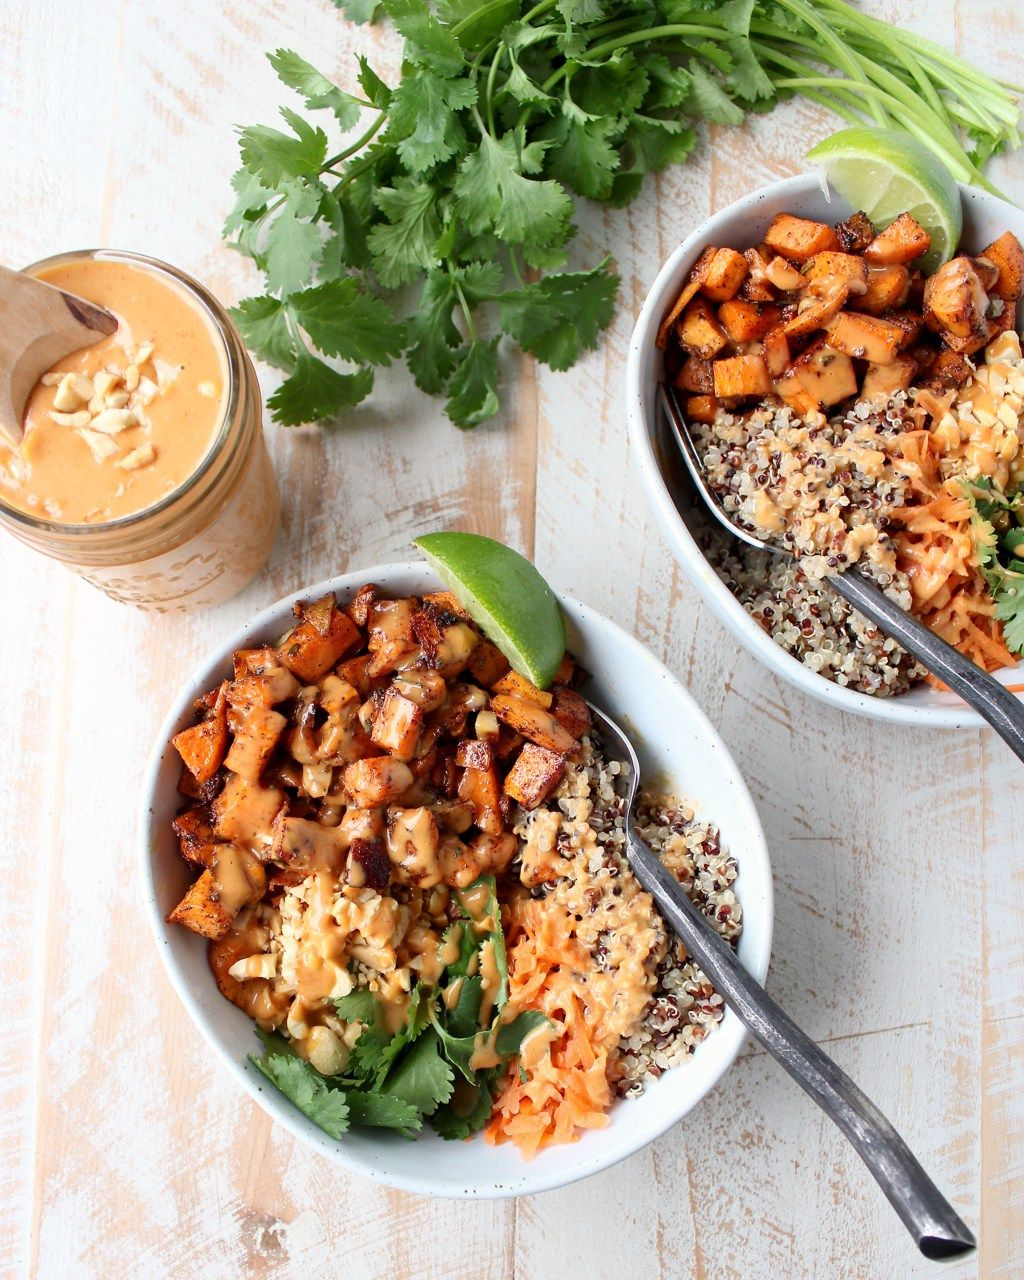 Roasted sweet potatoes and quinoa are topped with